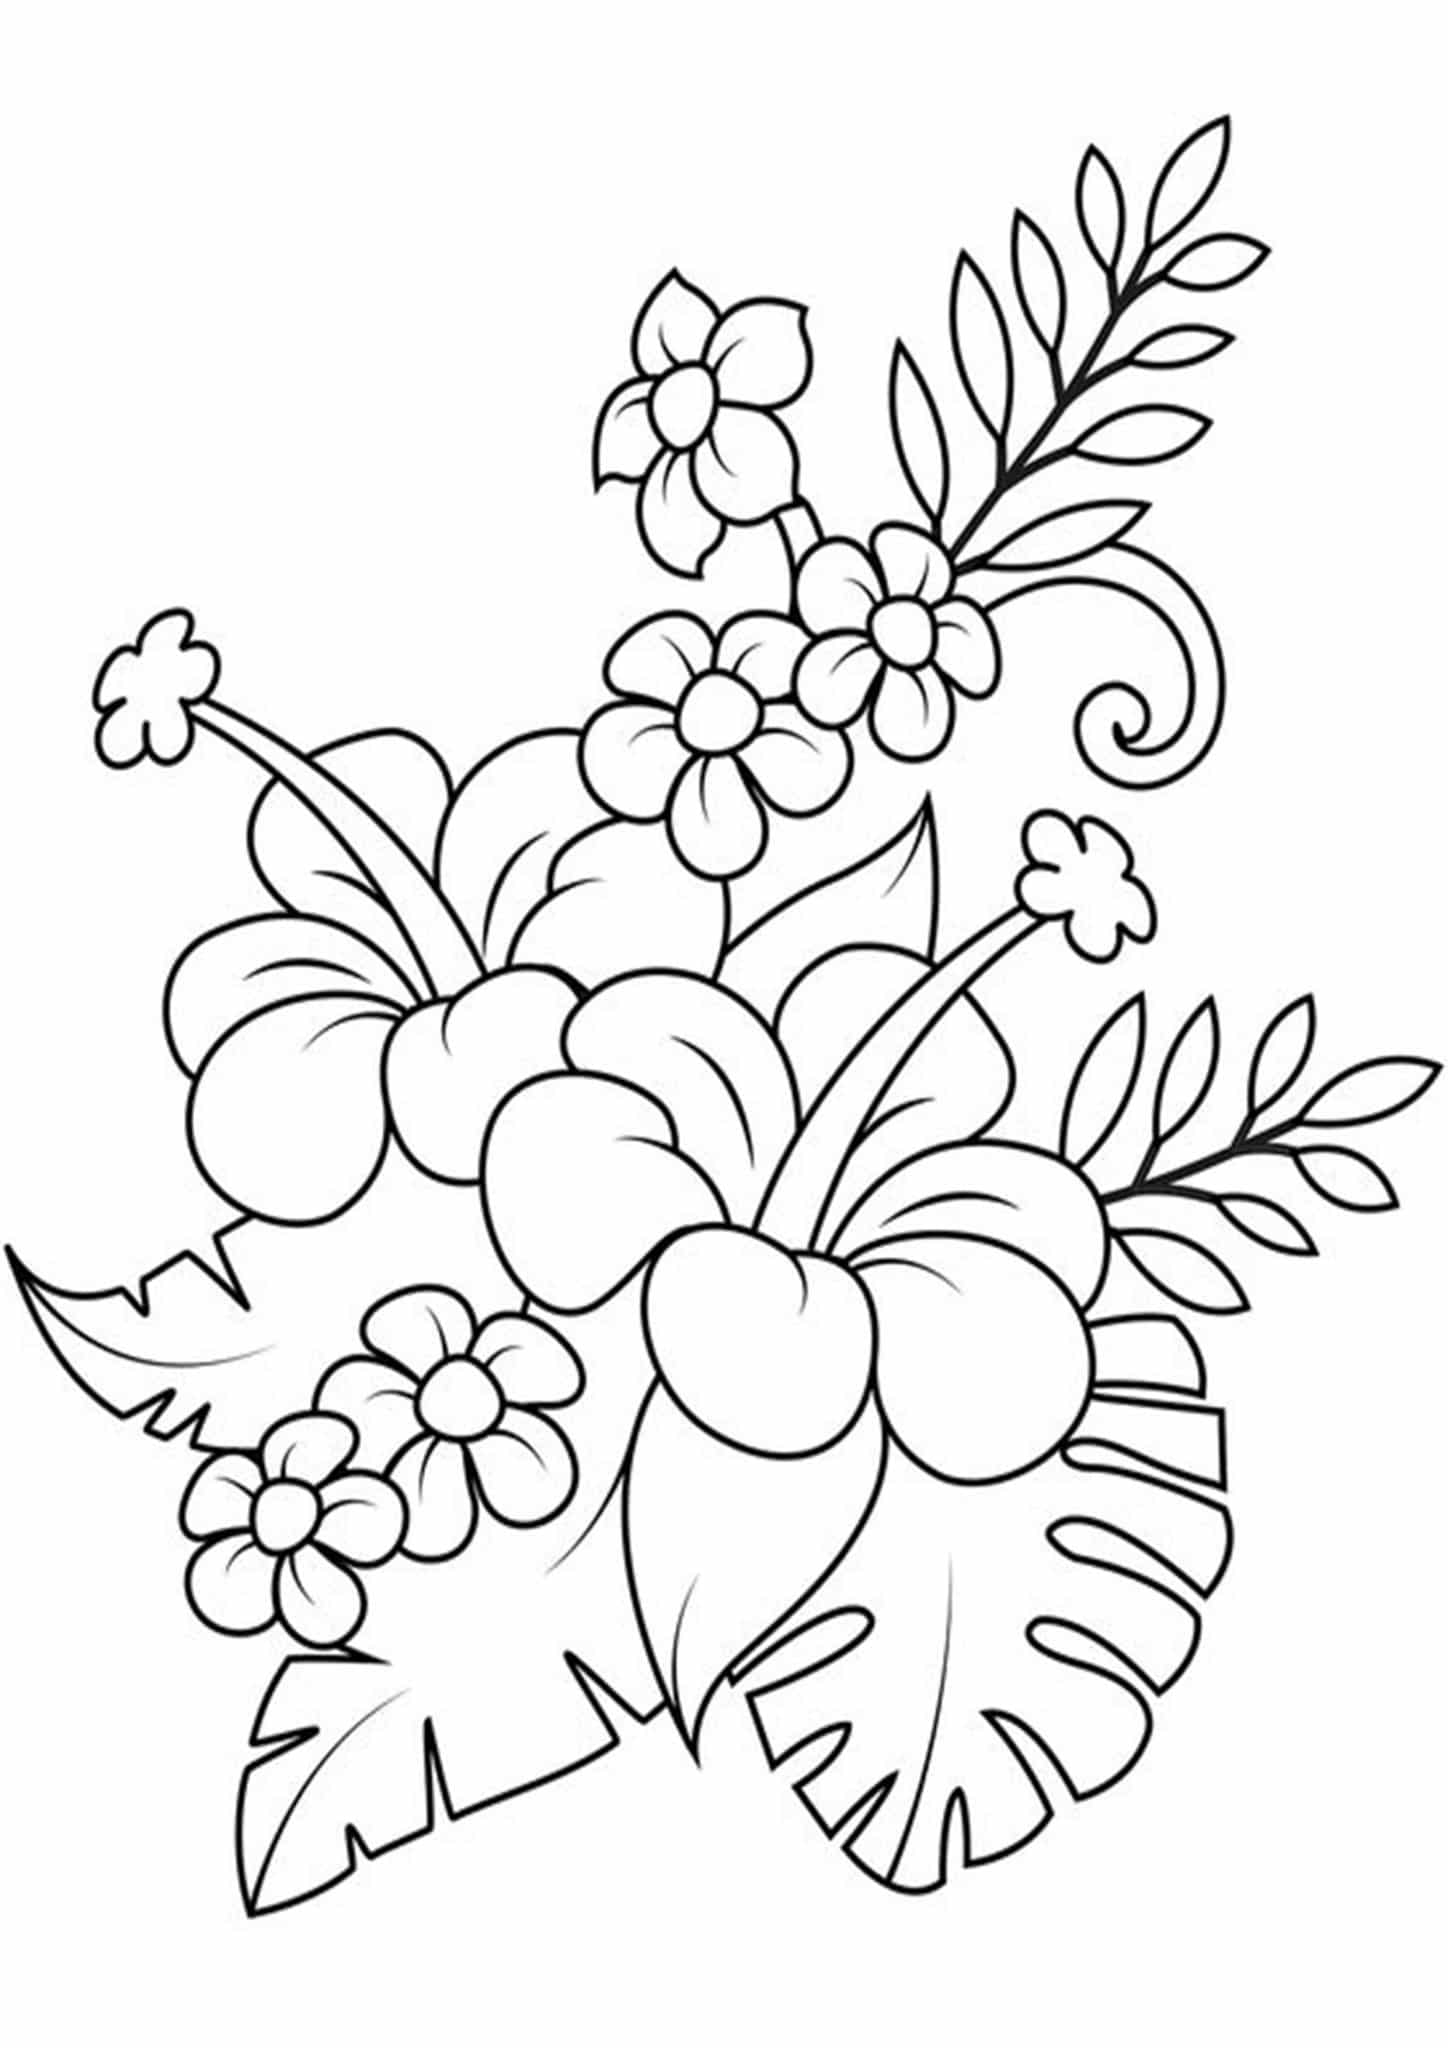 picture of flowers to colour free easy to print flower coloring pages tulamama colour of to picture flowers